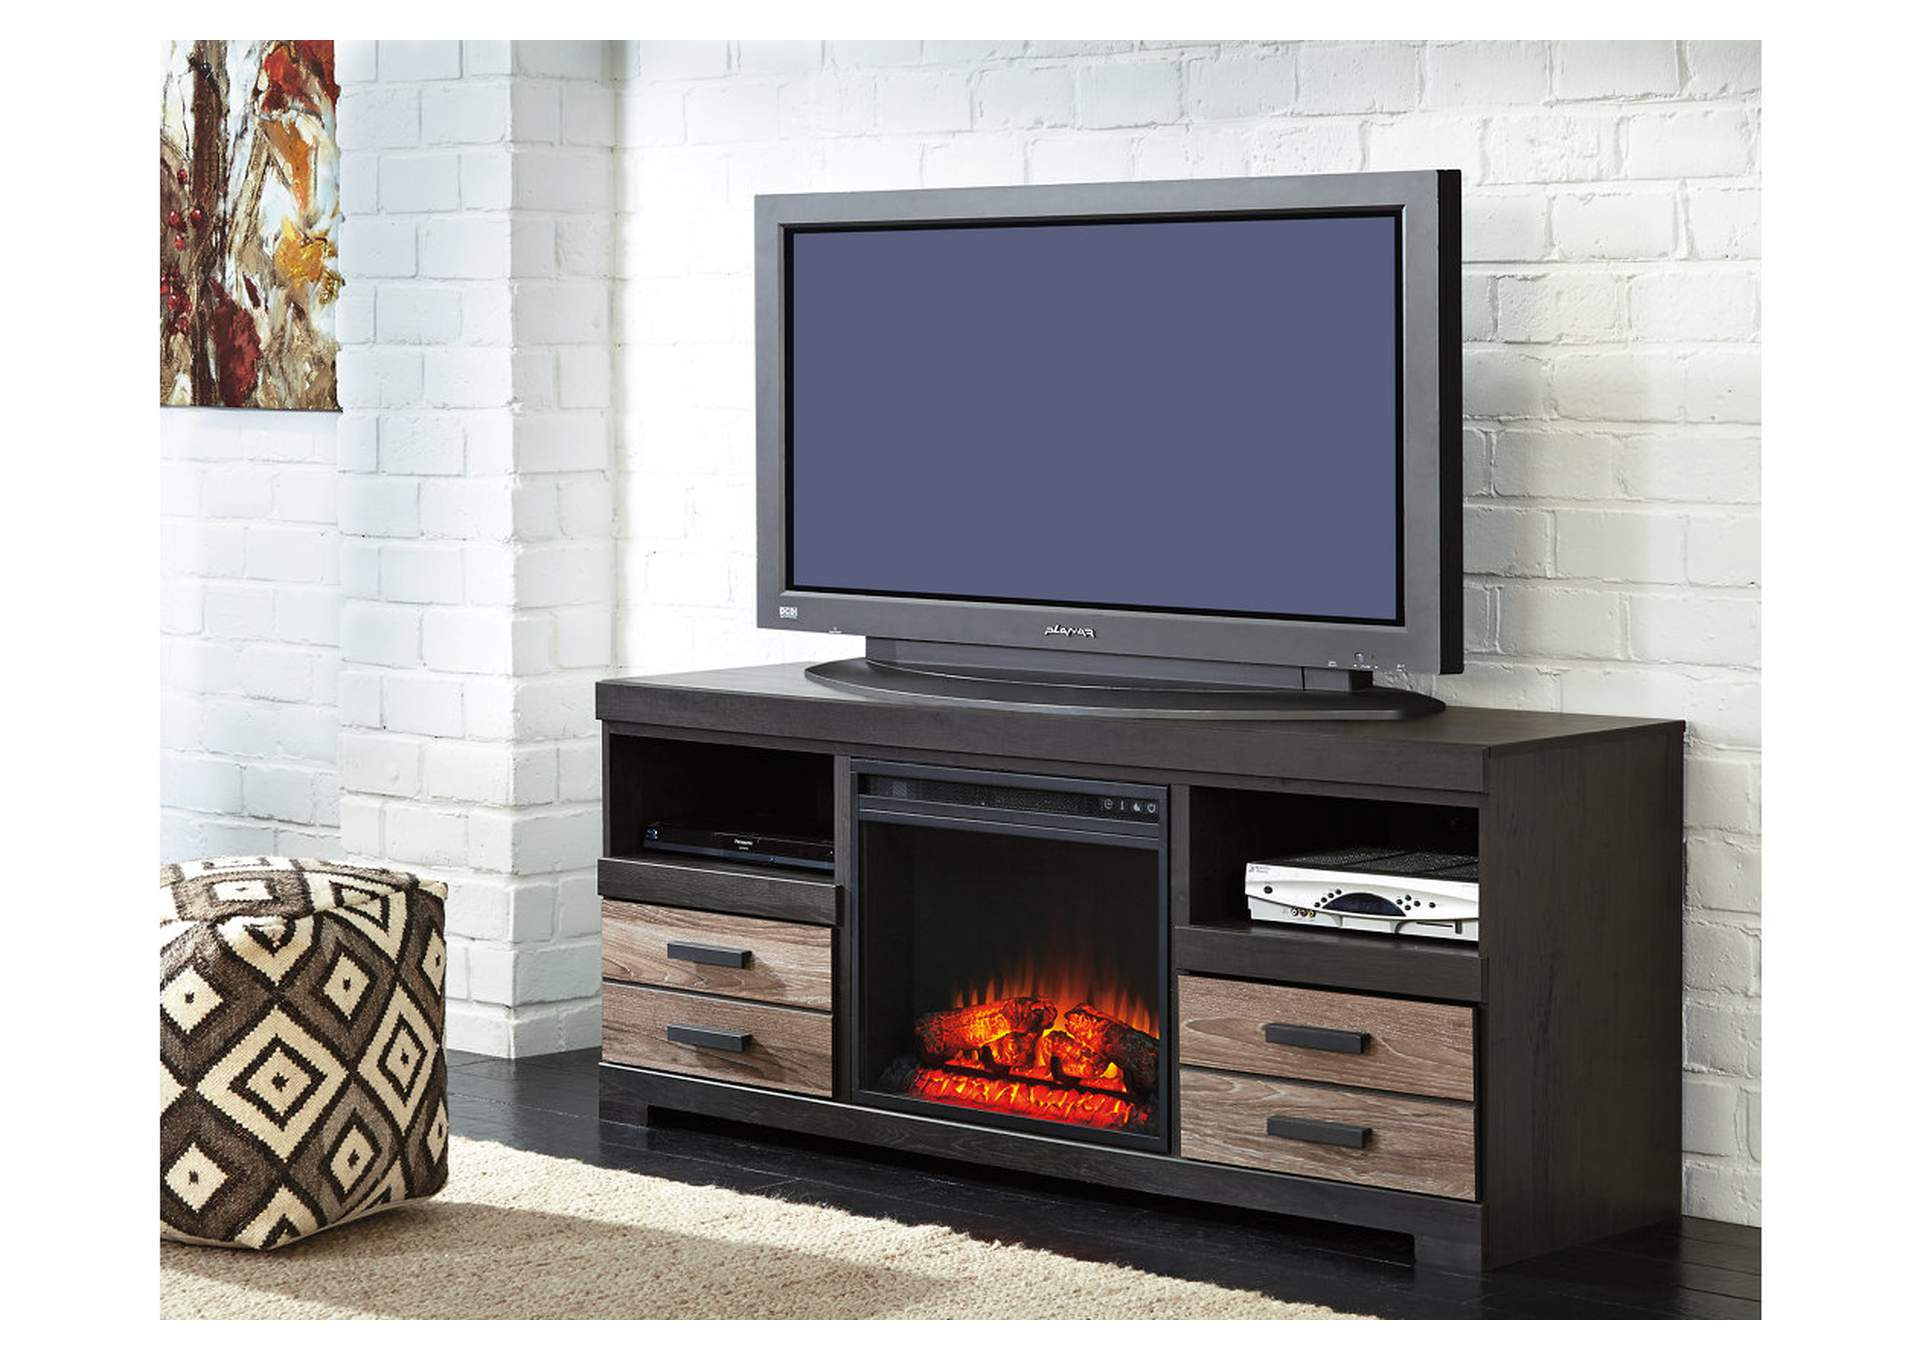 Harlinton Large TV Stand w/ LED Fireplace Insert,Signature Design By Ashley